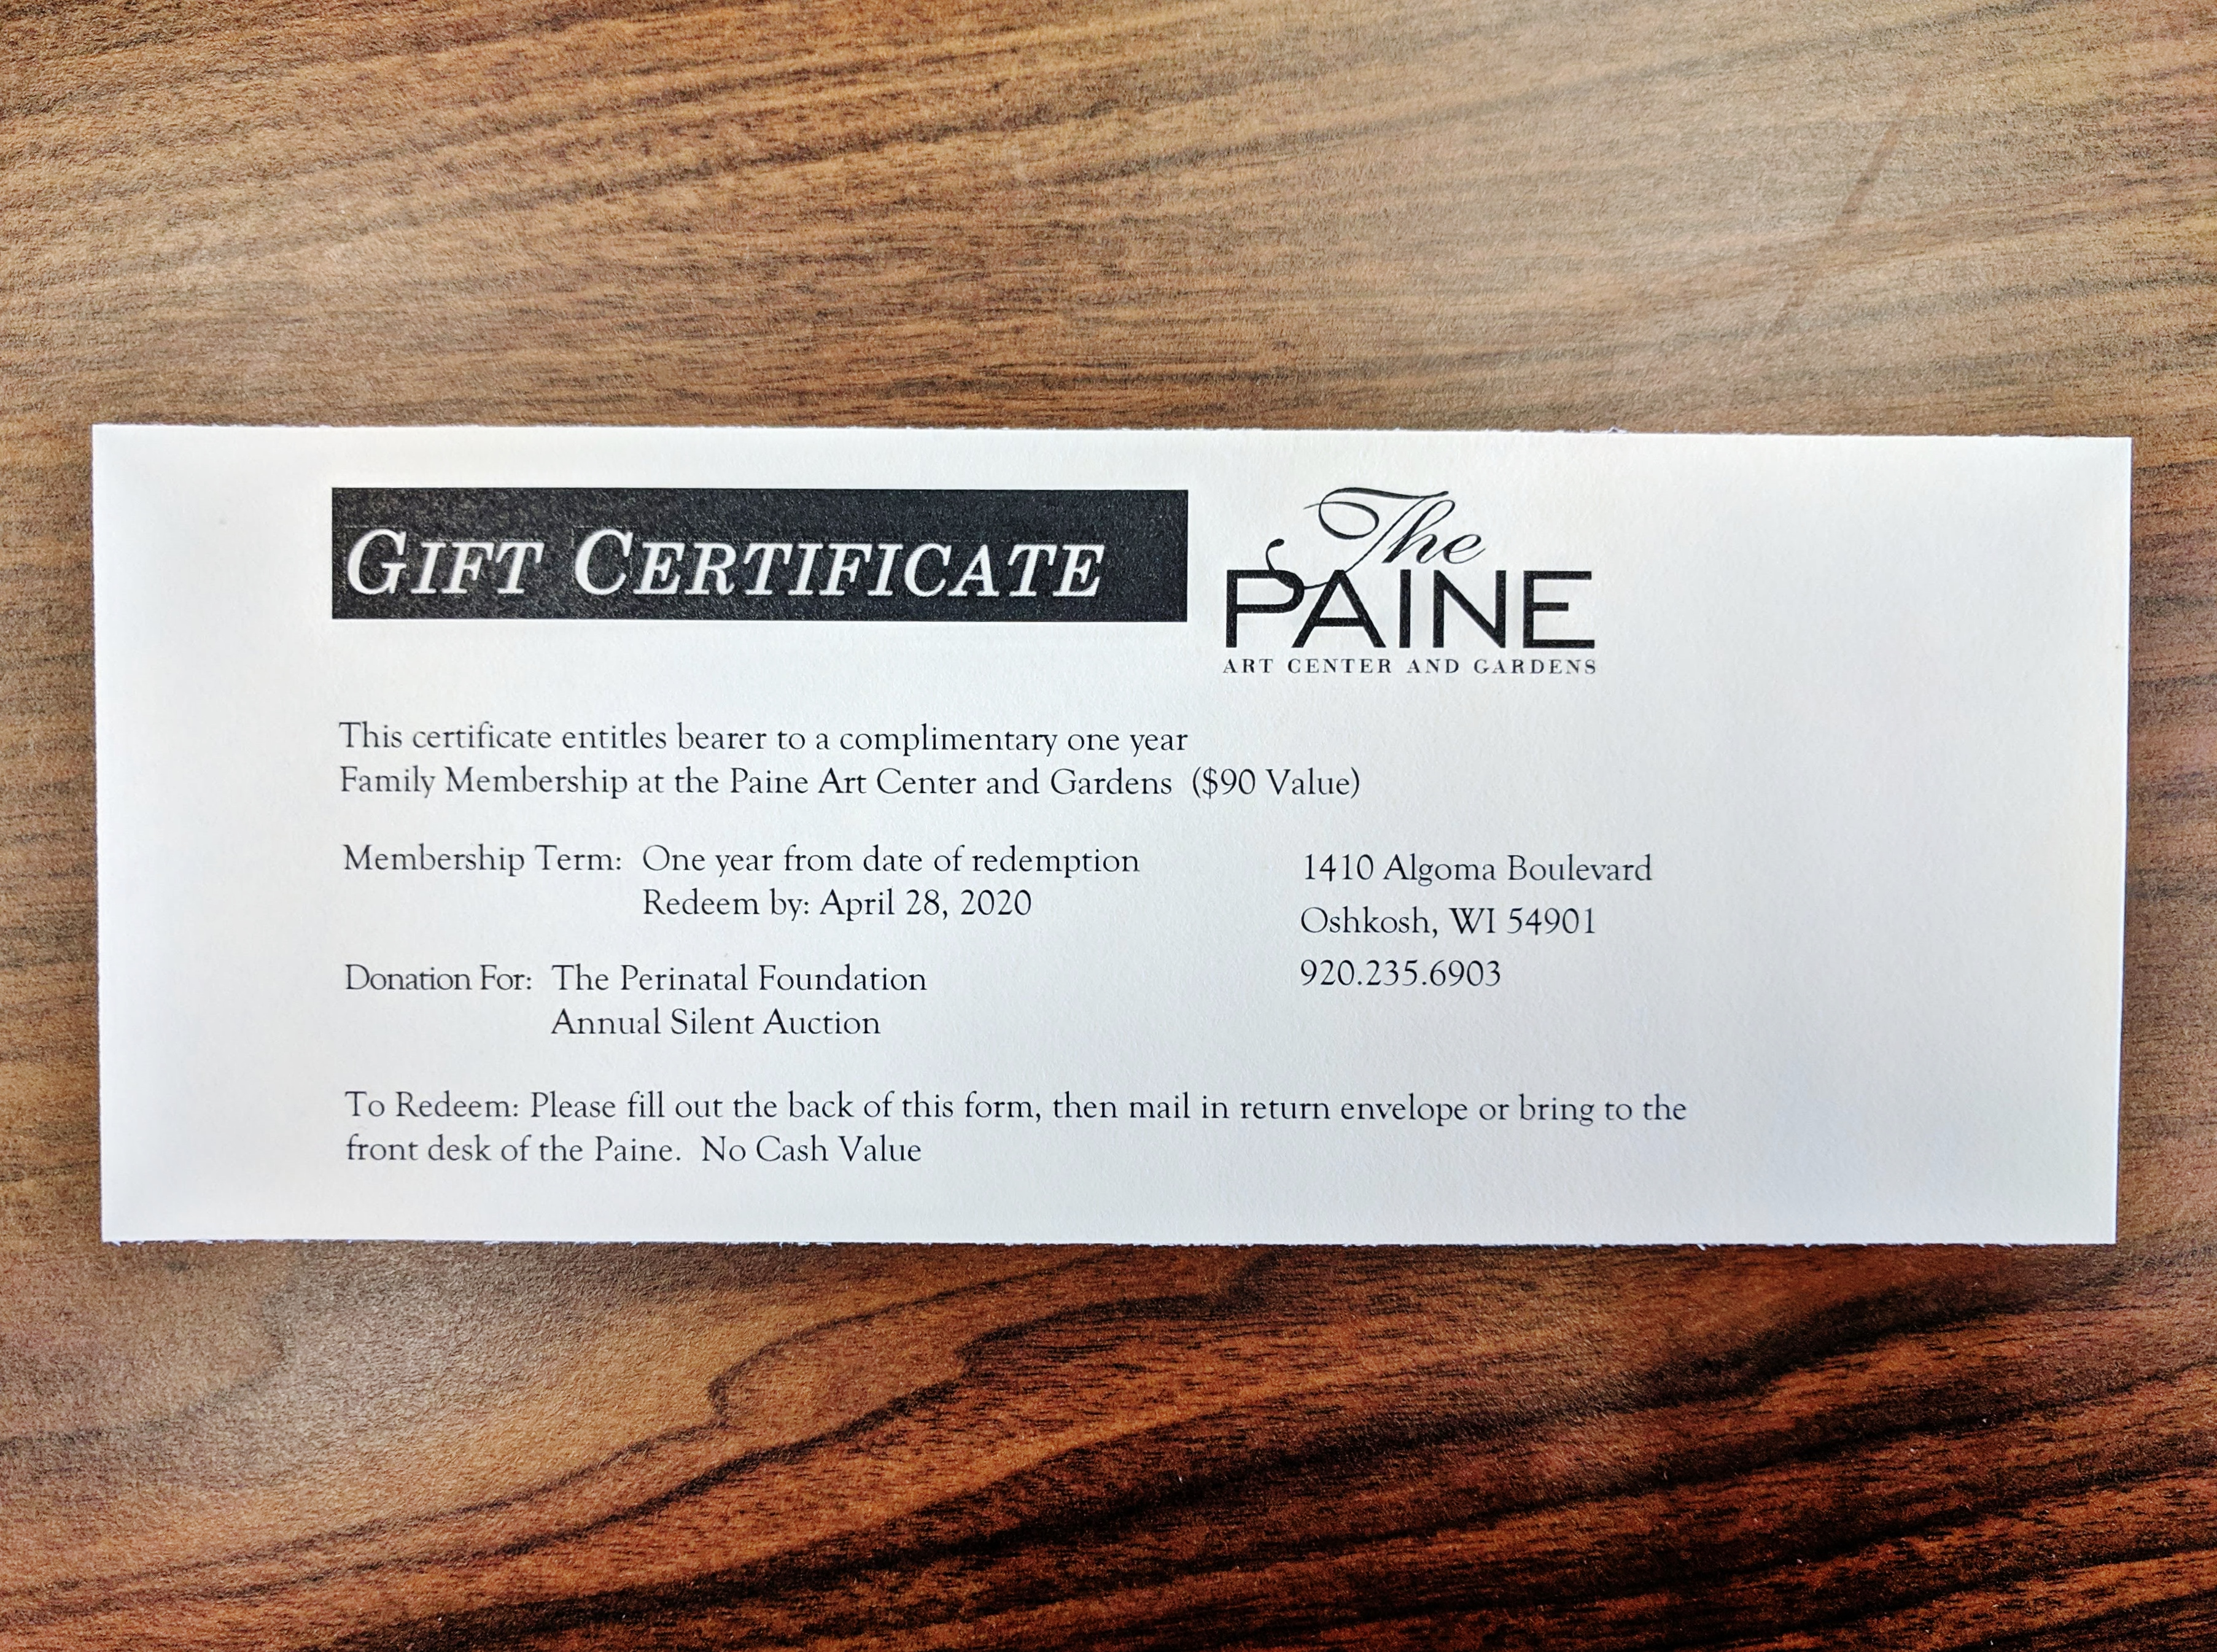 One-Year Family Membership to The Paine Art Center in Oshkosh, WI